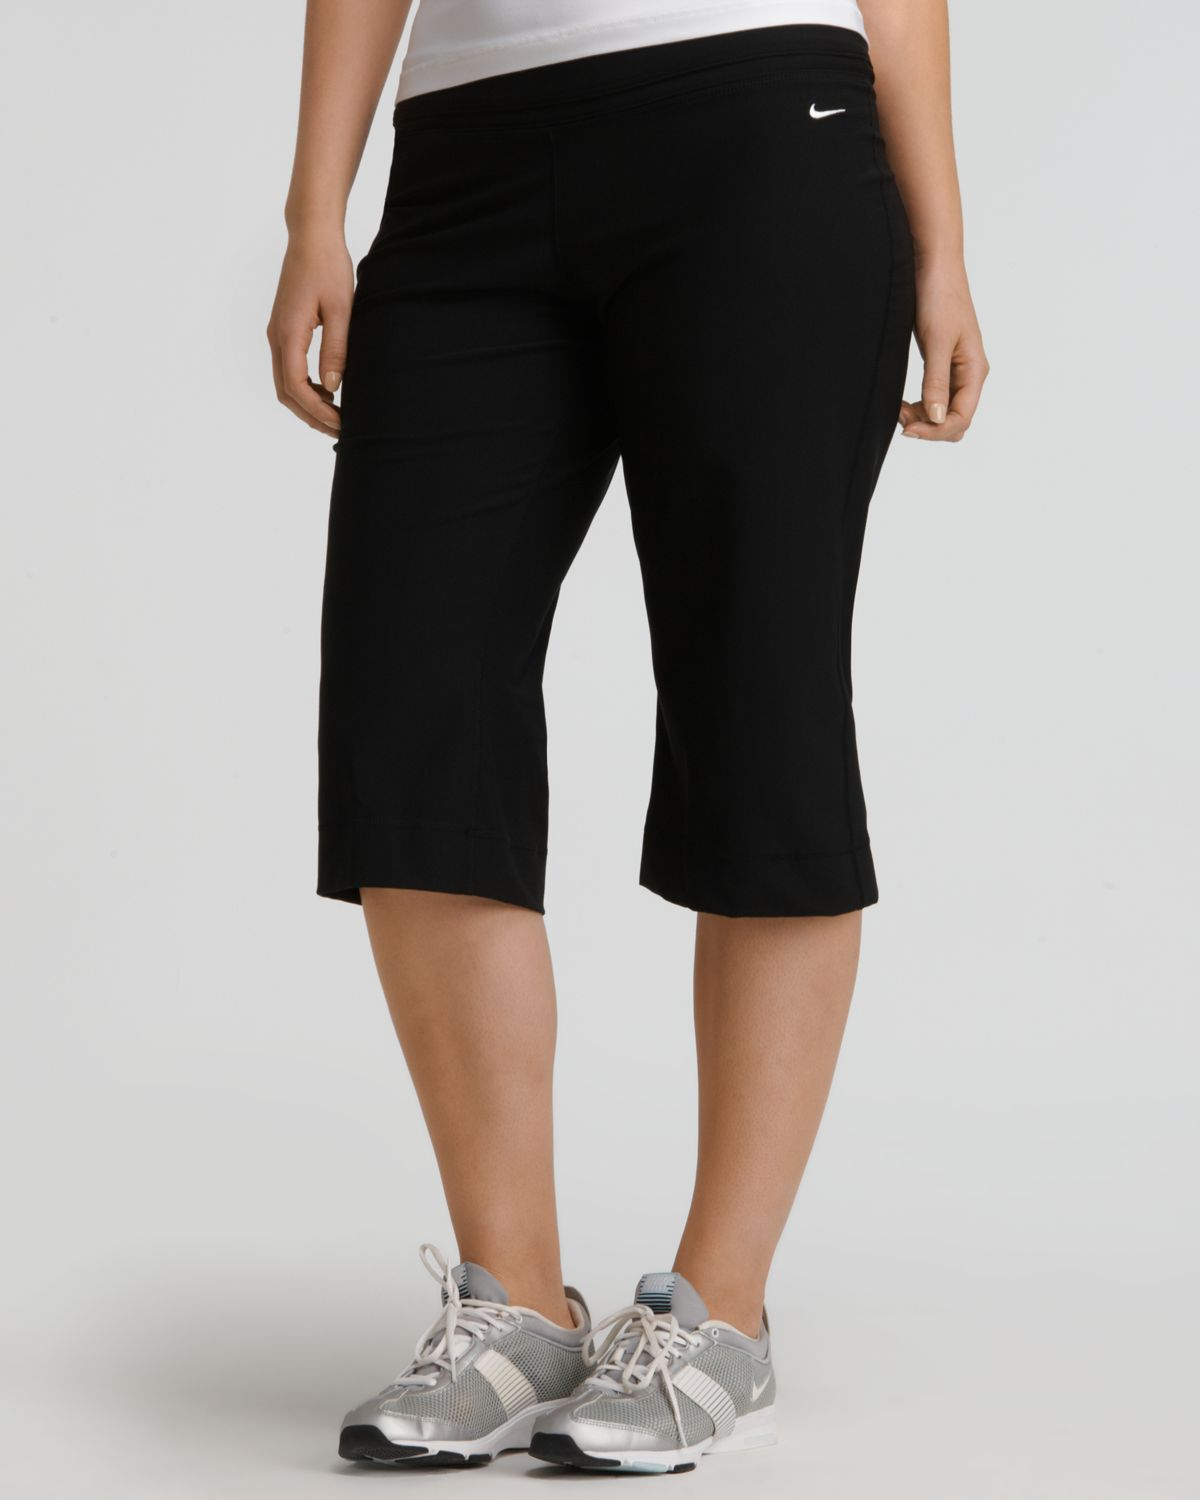 plus size pants that fit photo - 1